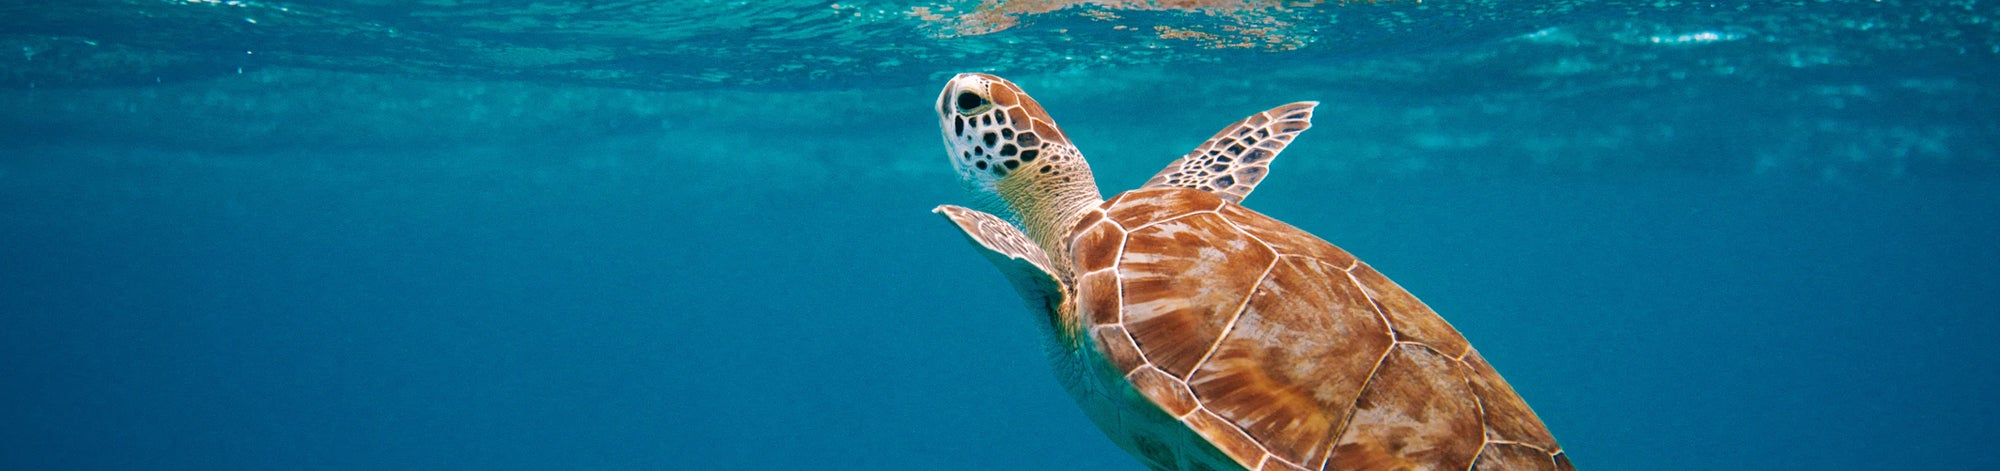 Sea turtle coming to the surface of the ocean